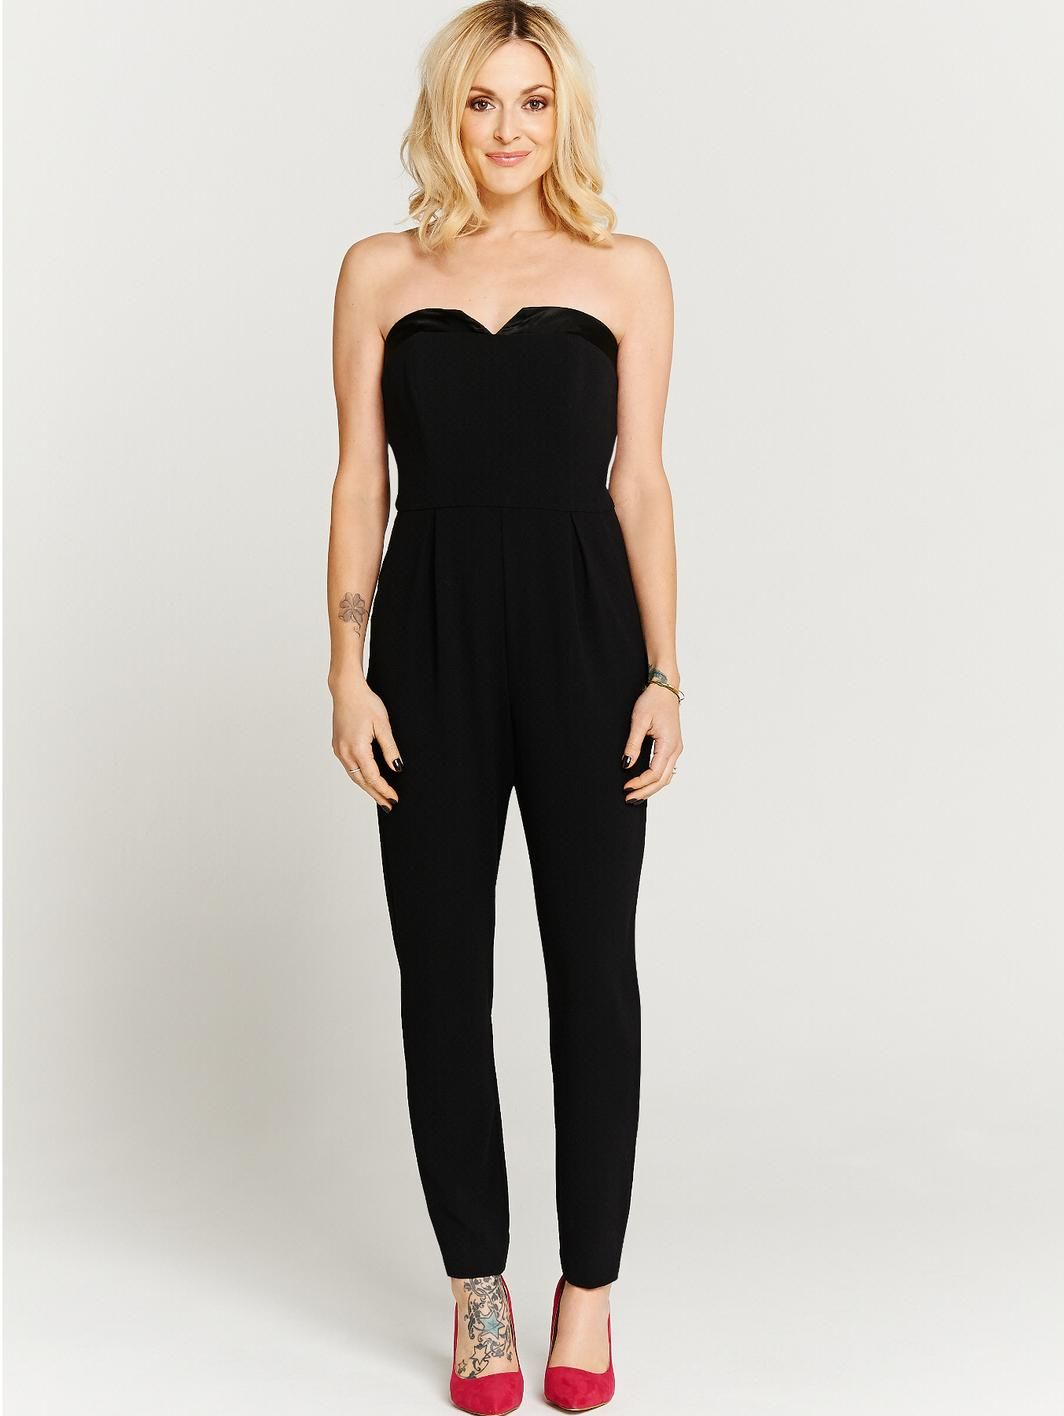 Bodice Jumpsuit, http://www.very.co.uk/fearne-cotton-bodice-jumpsuit ...